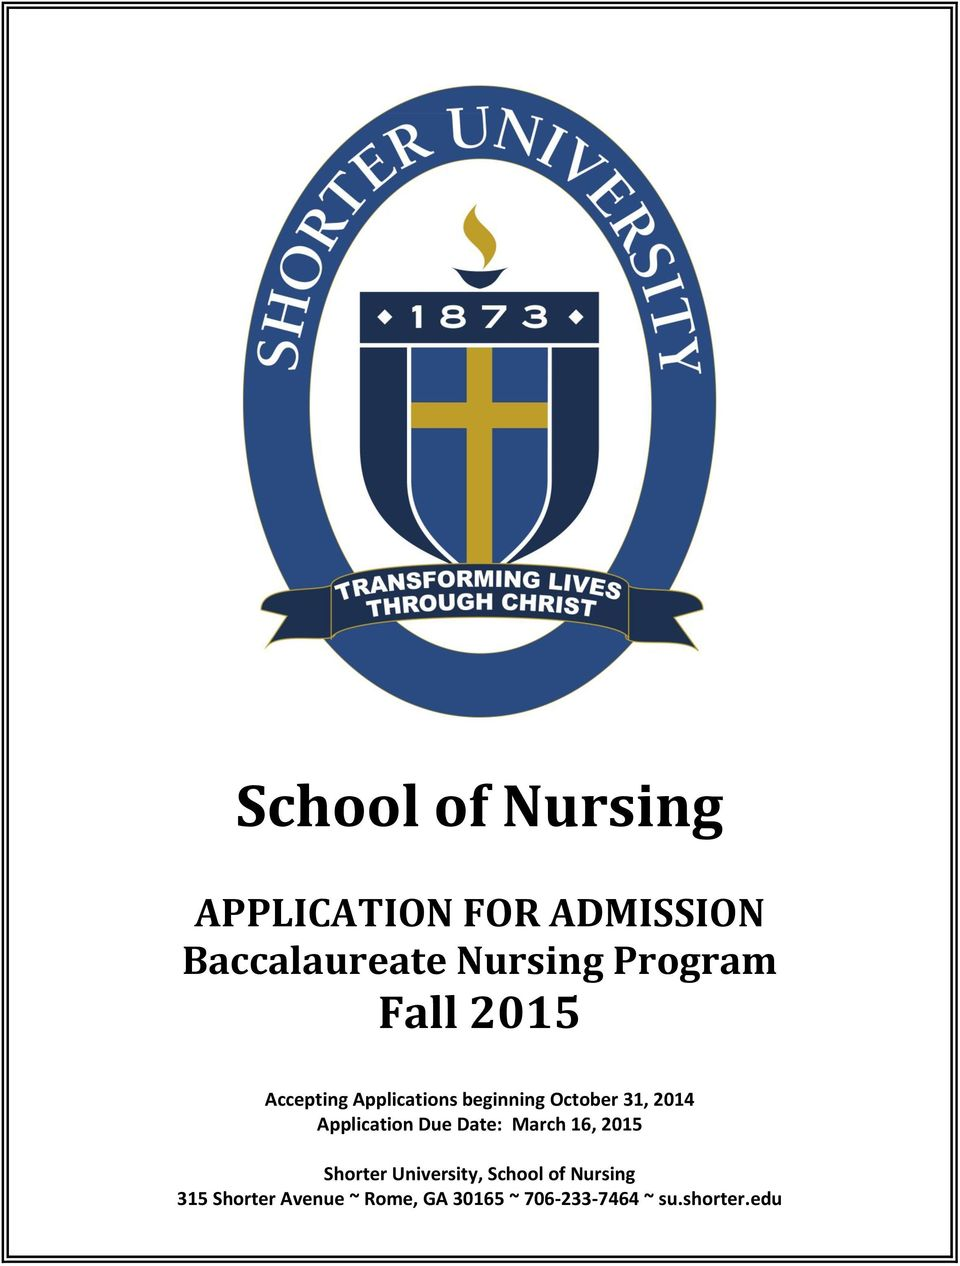 Application Due Date: March 16, 2015 Shorter University, School of